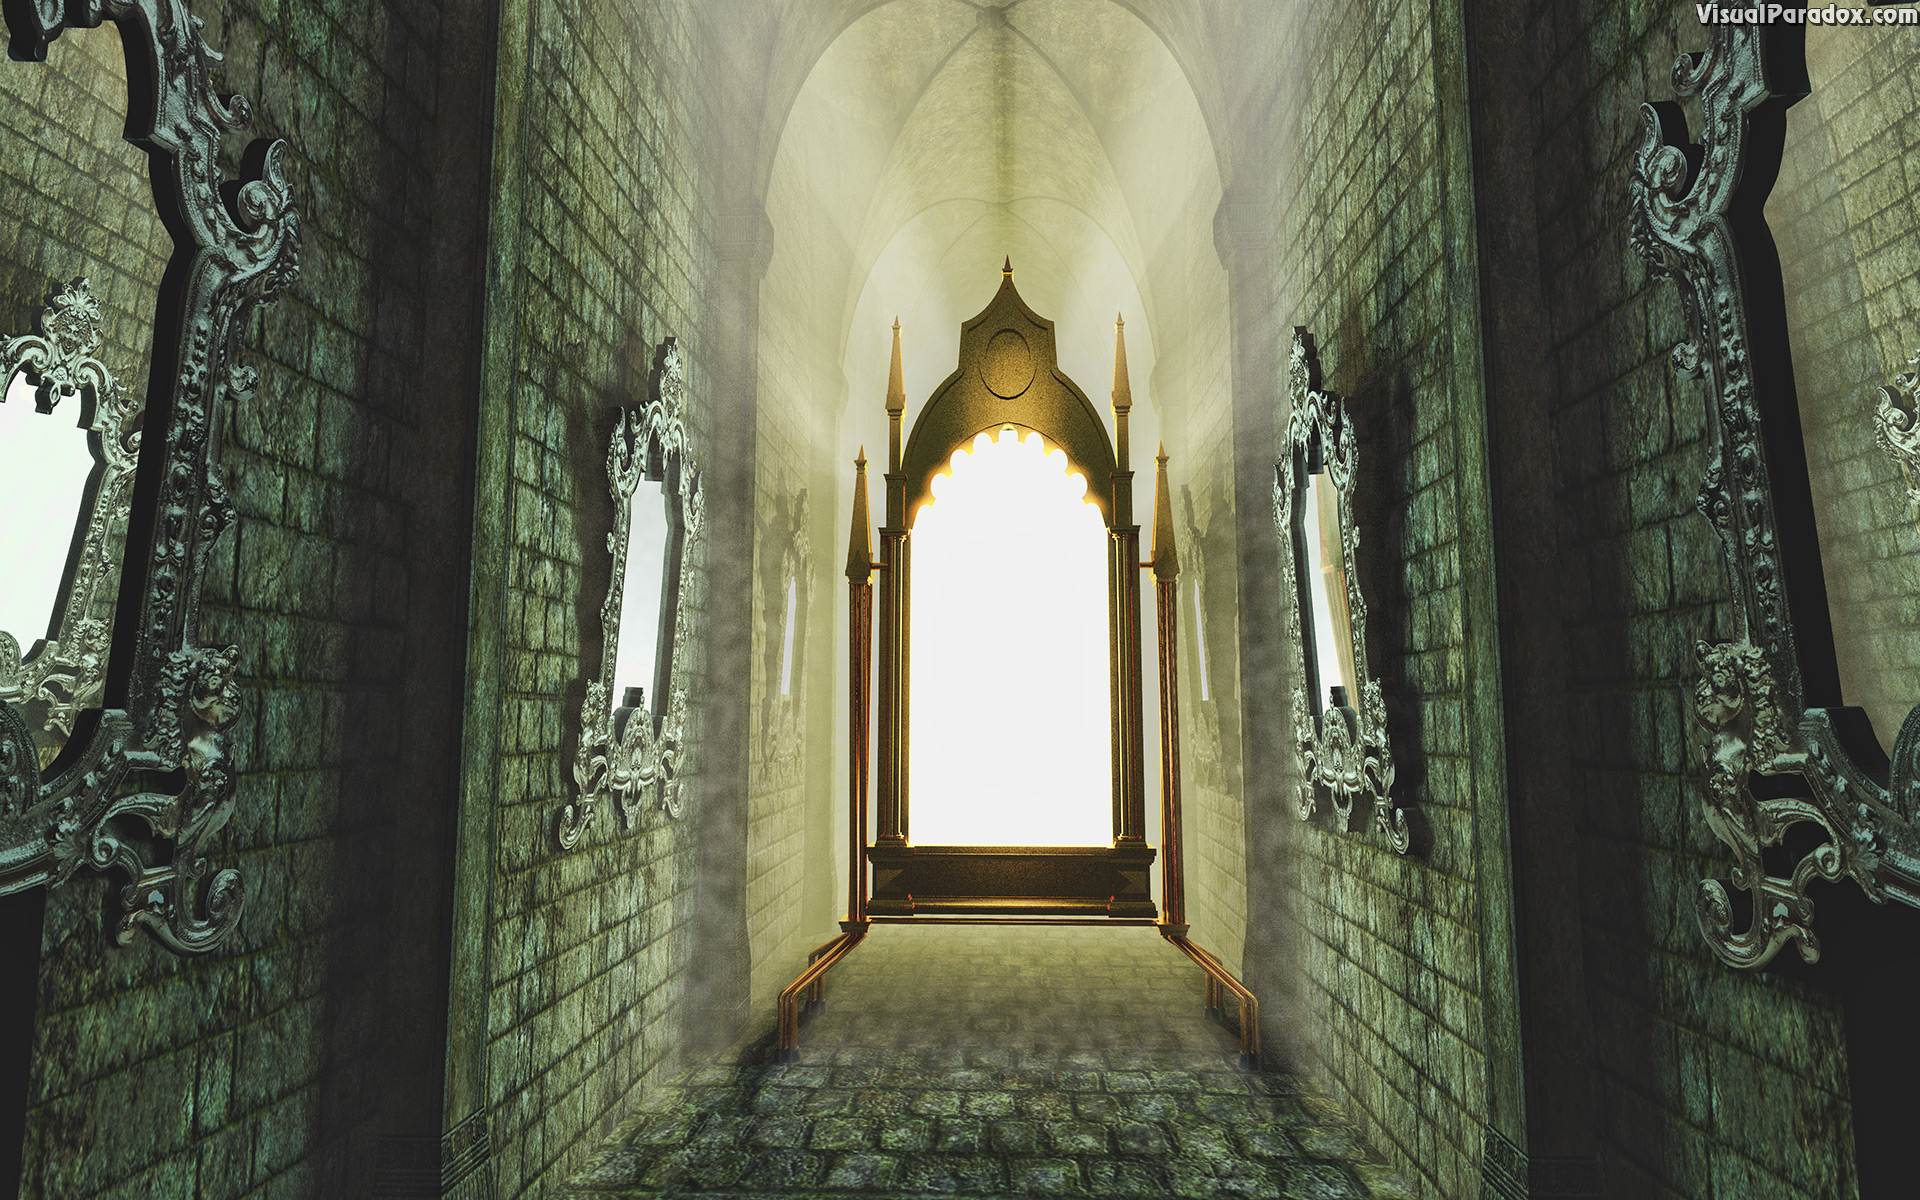 ancient, architecture, background, black, building, corridor, dark, empty, entrance, evil, floor, frame, furniture, glass, gothic, grunge, hall, hallway, inside, interior, light, magic, mirror, old, ornate, perspective, reflection, room, scry, spooky, stone, style, superstition, vestibule, wall, white, witch, 3d, wallpaper